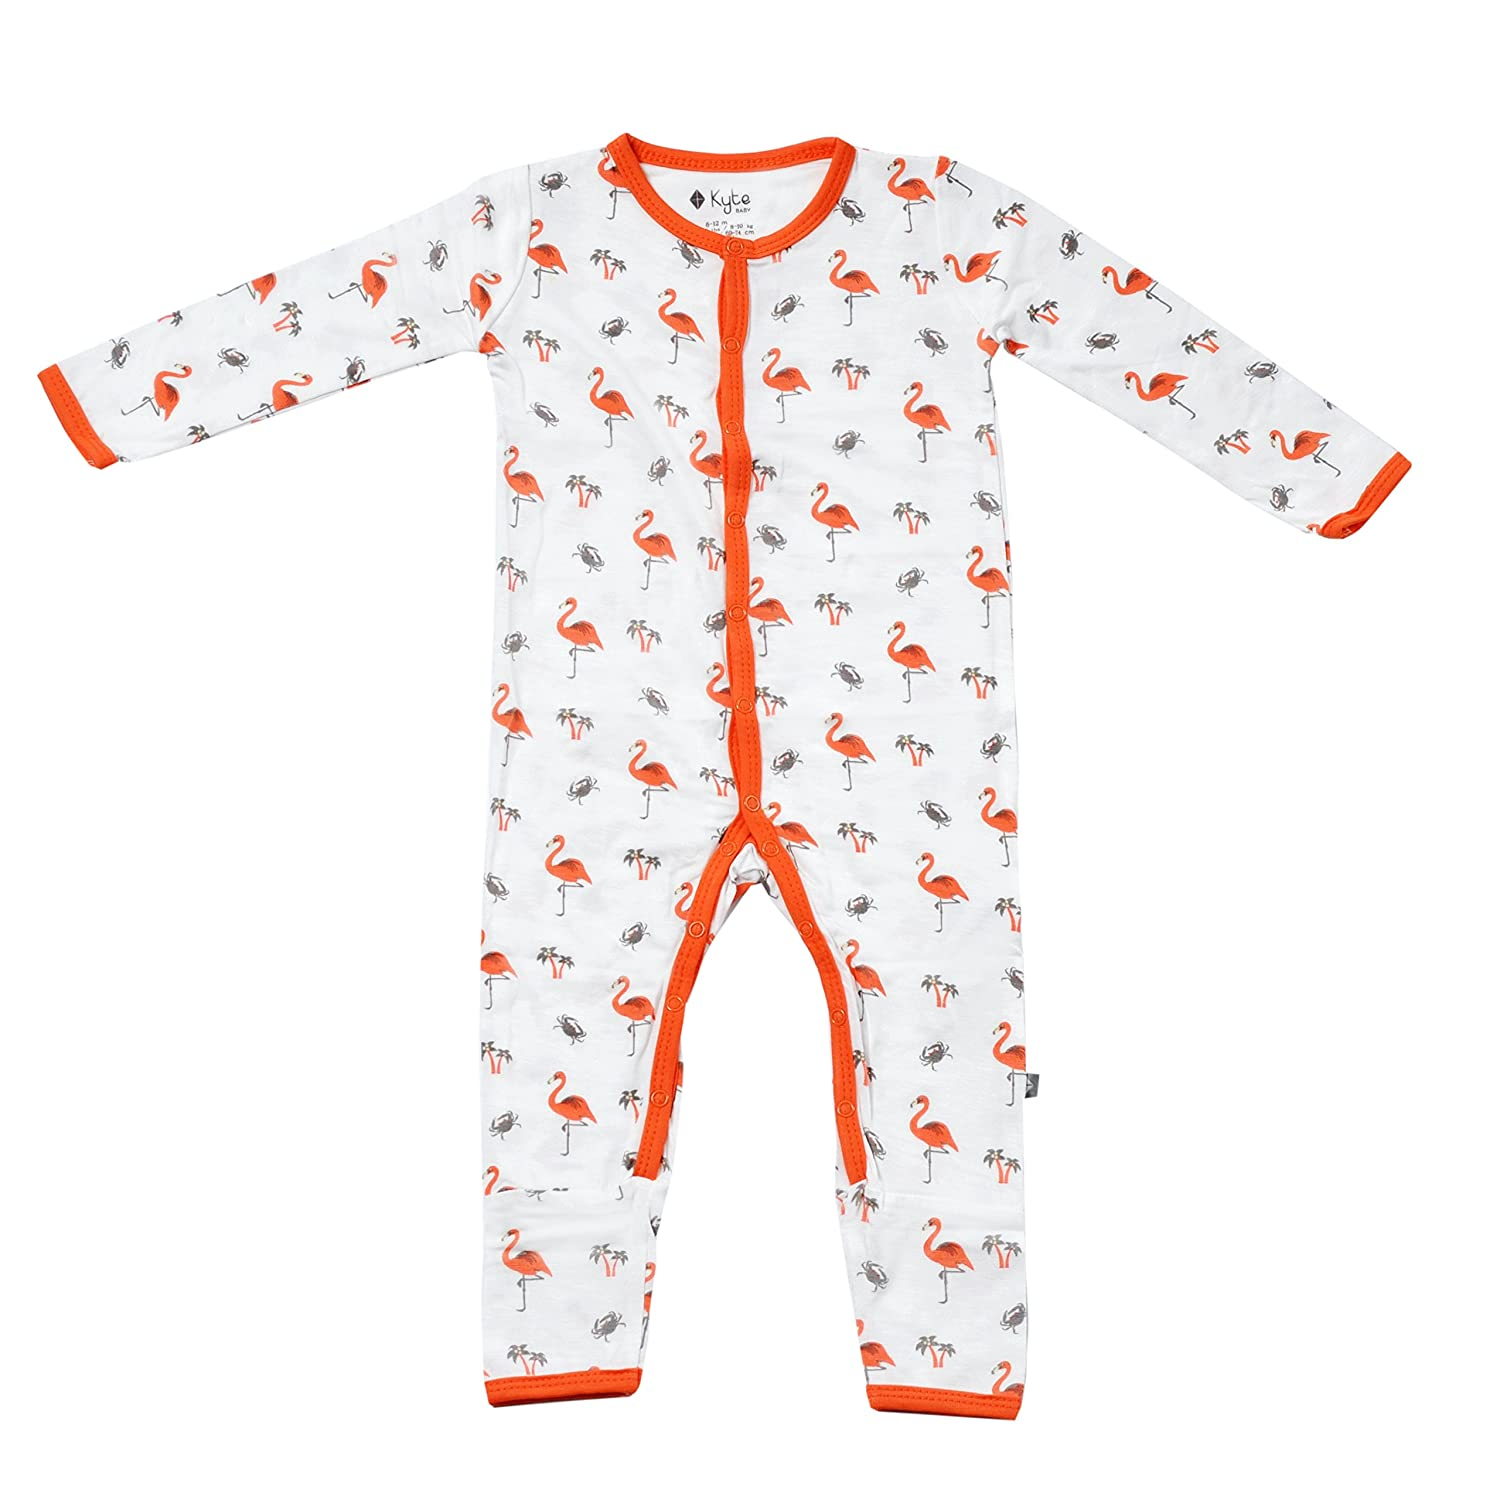 Kyte BABY Rompers Baby Footless Coveralls Made of Soft Organic Bamboo Rayon Material 0-24 Months Printed Color